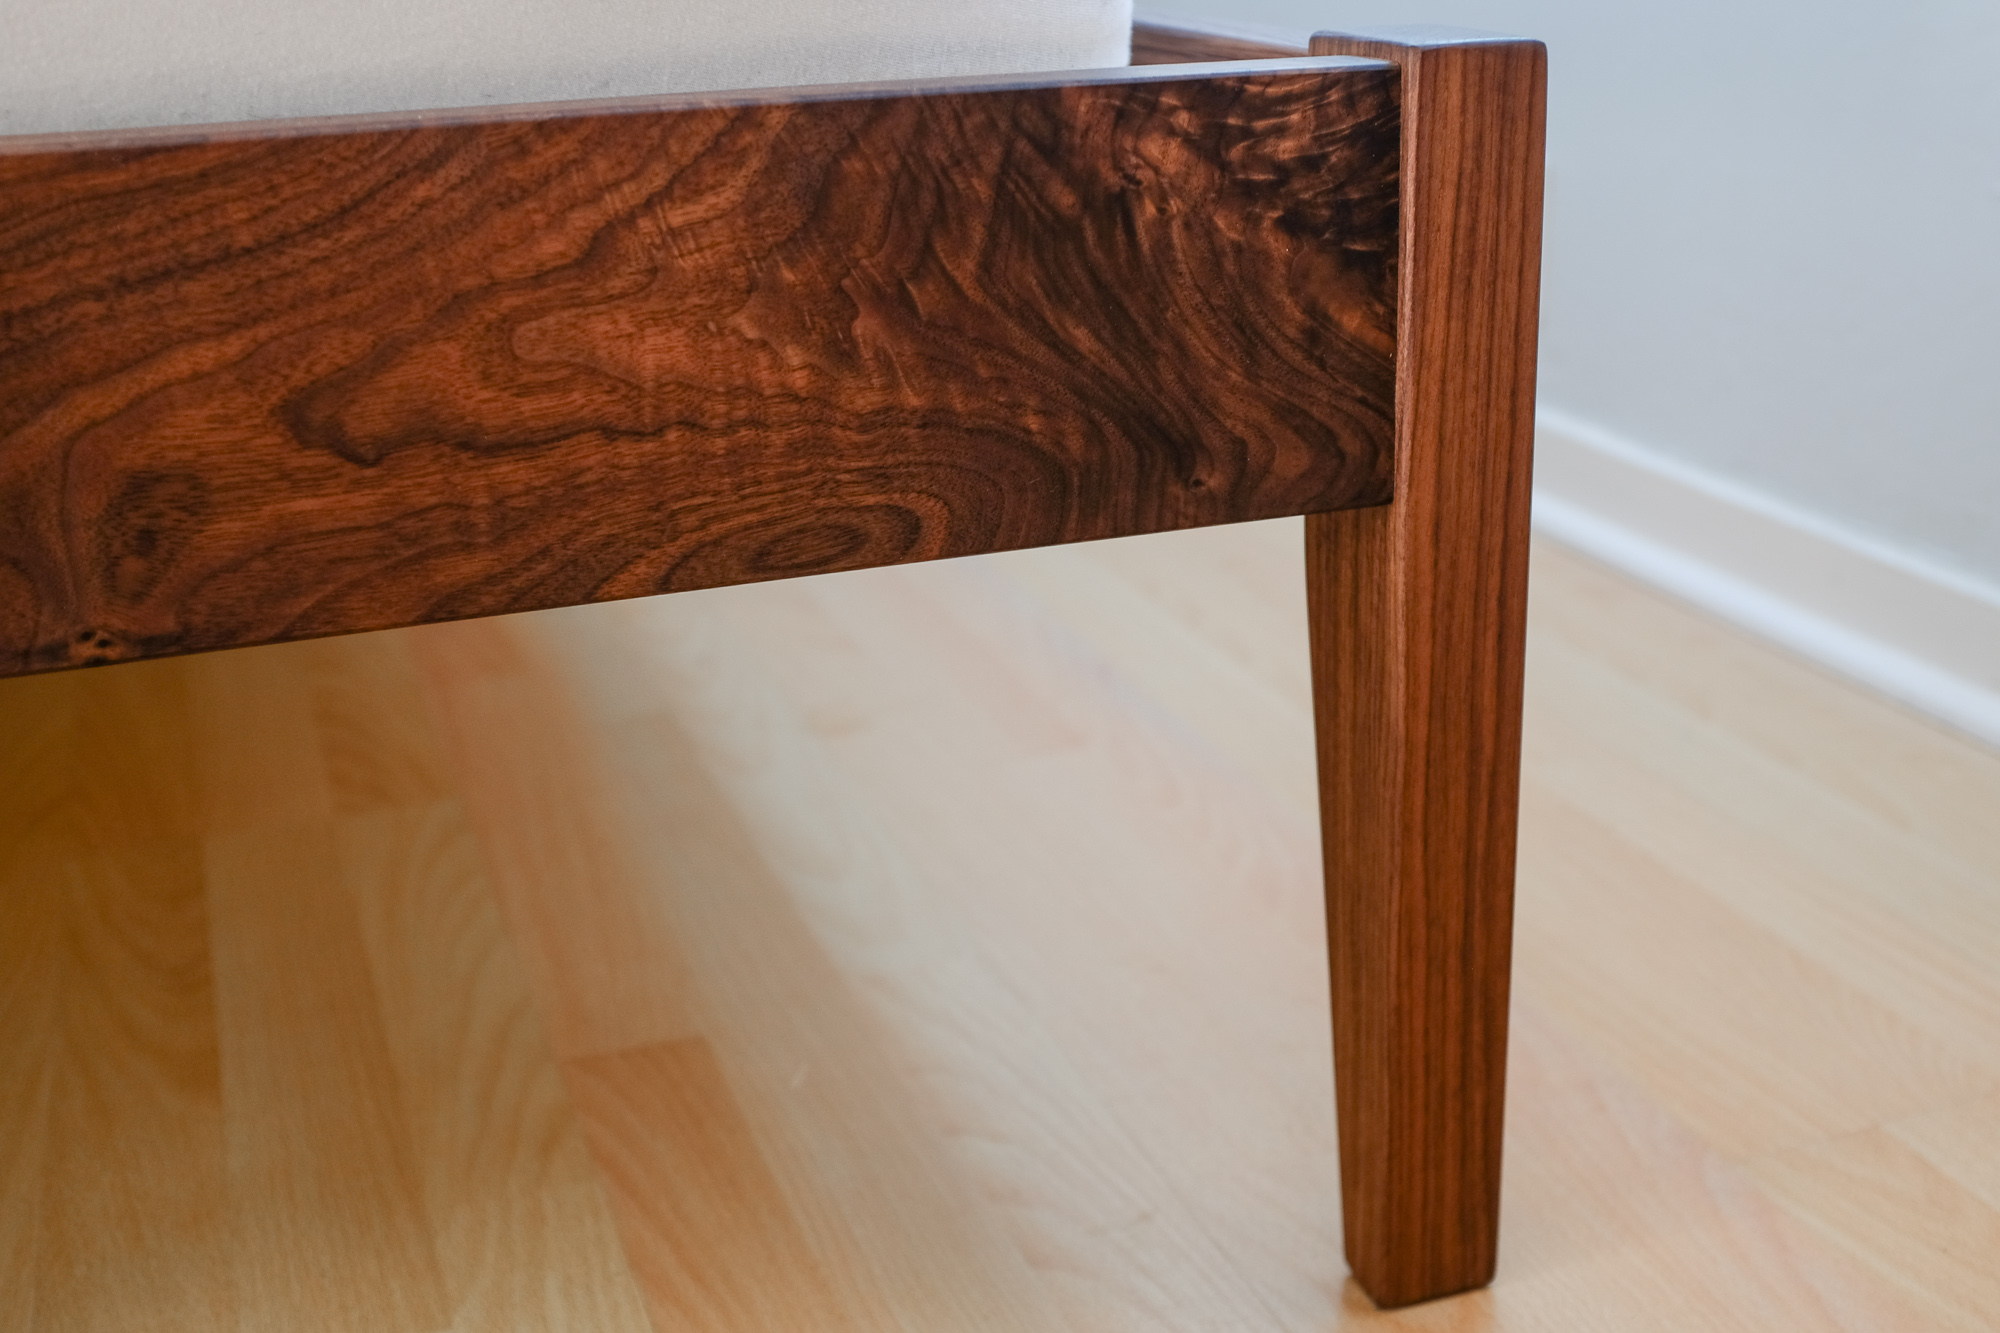 Detail of foot rail and foot post on walnut bed.